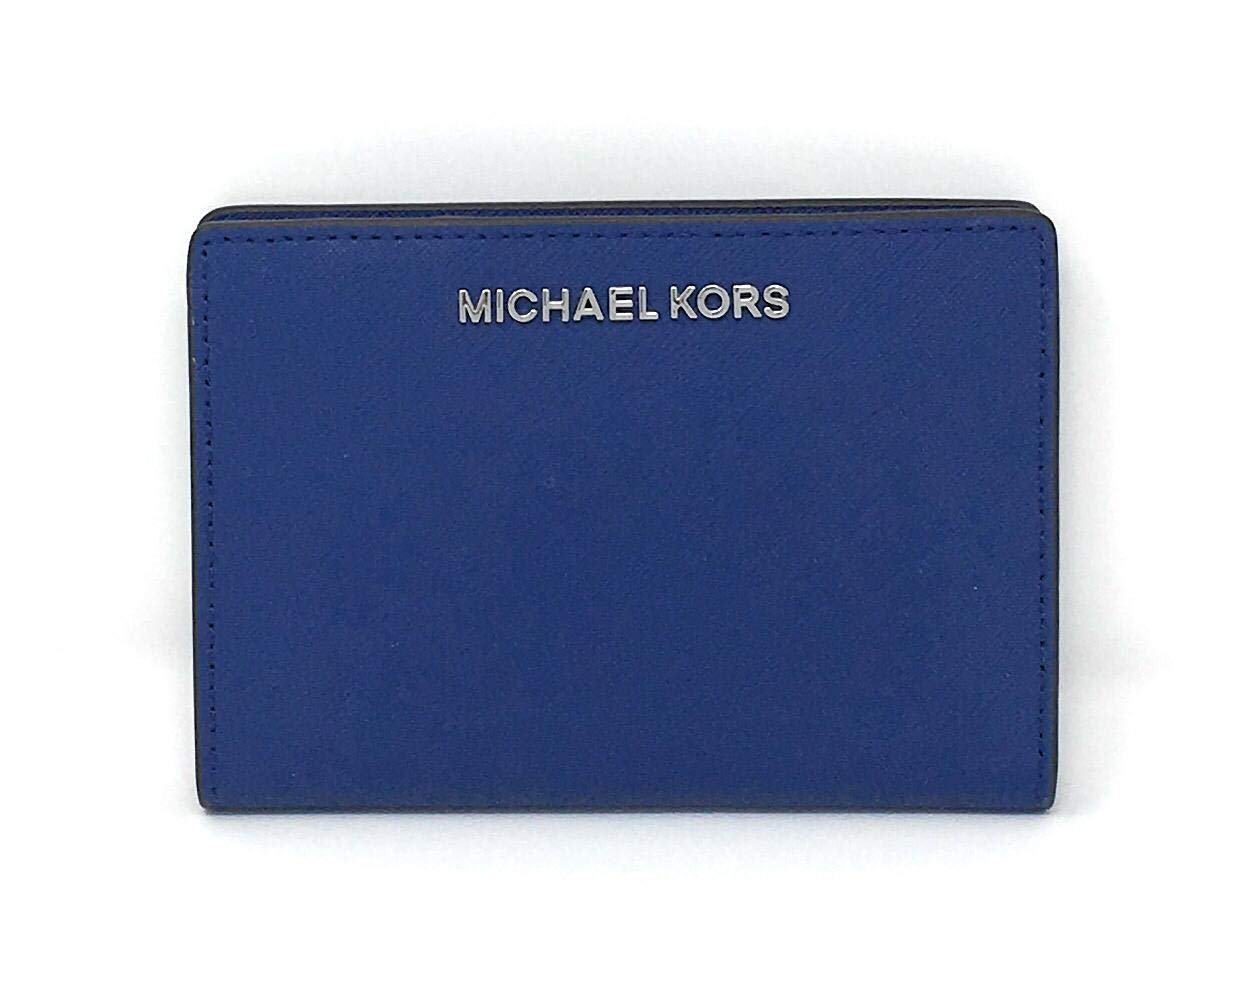 Michael Kors Carryall 2 in 1 Wallet With Card Case (Sapphire) by Michael Kors